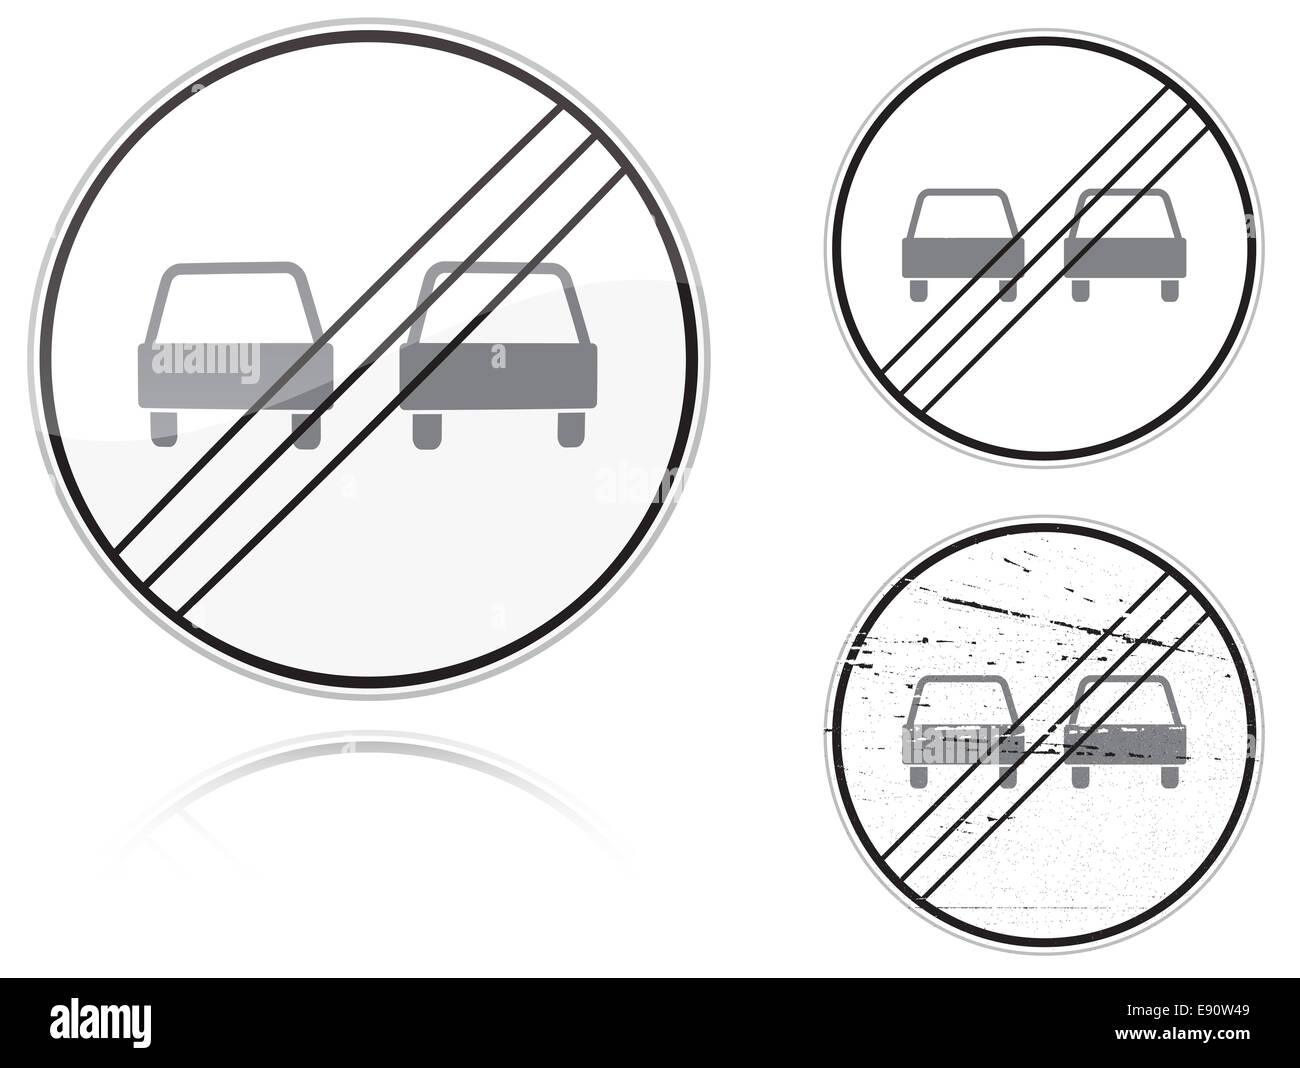 Variants a End of no passing - road sign - Stock Image